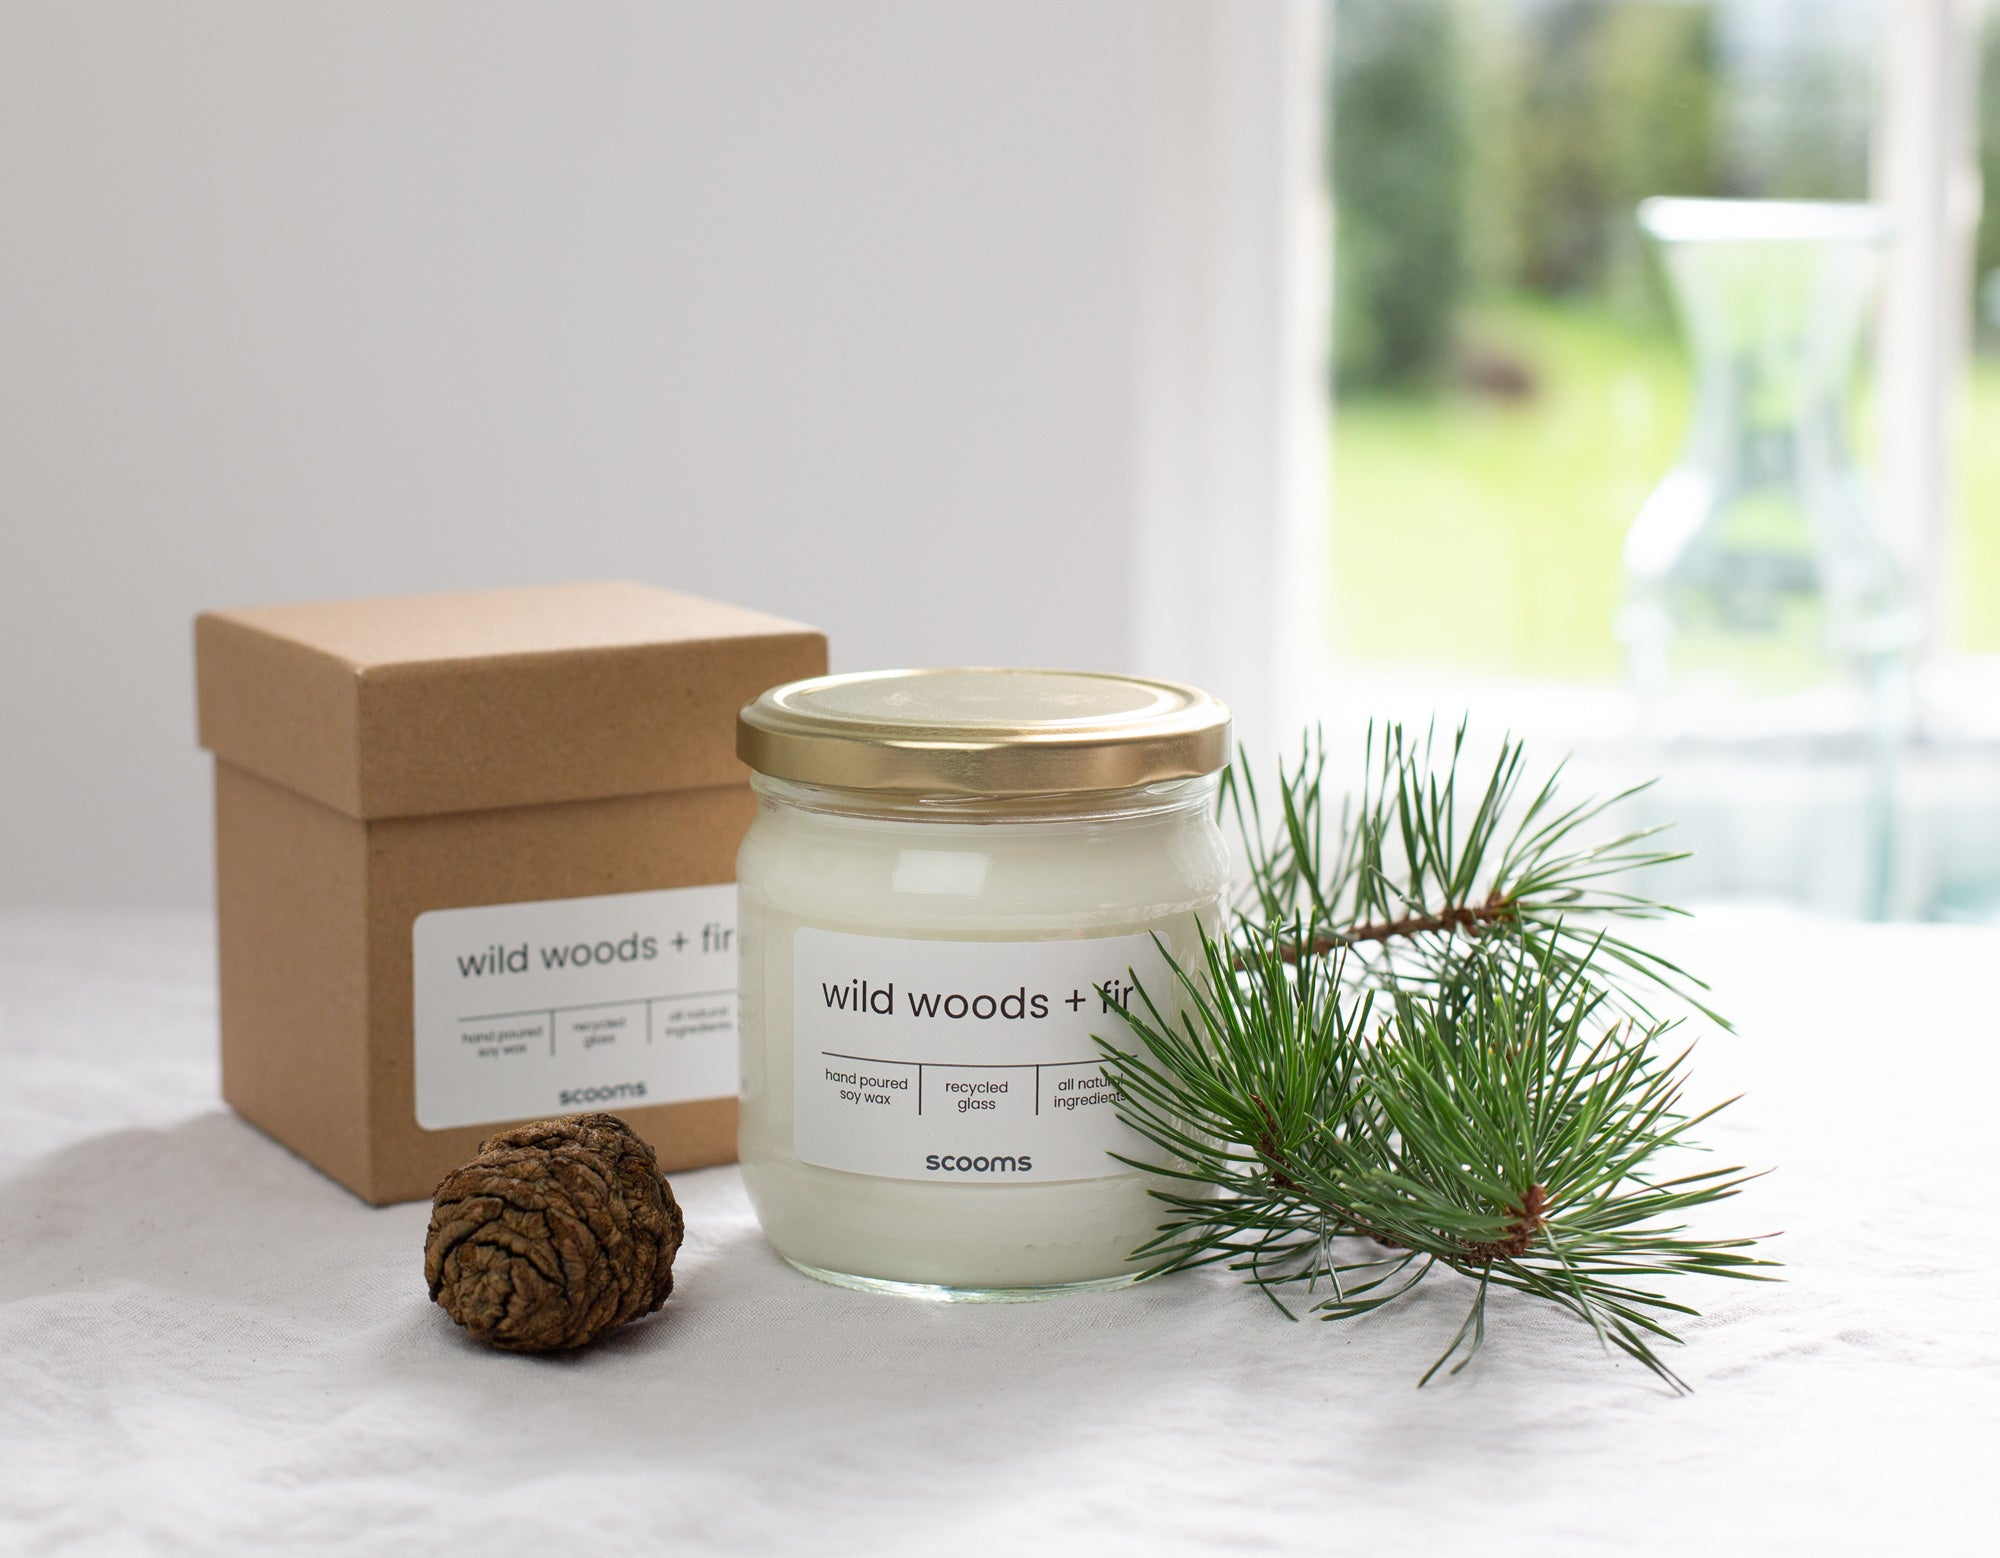 Wild woods + Fir candle | scooms